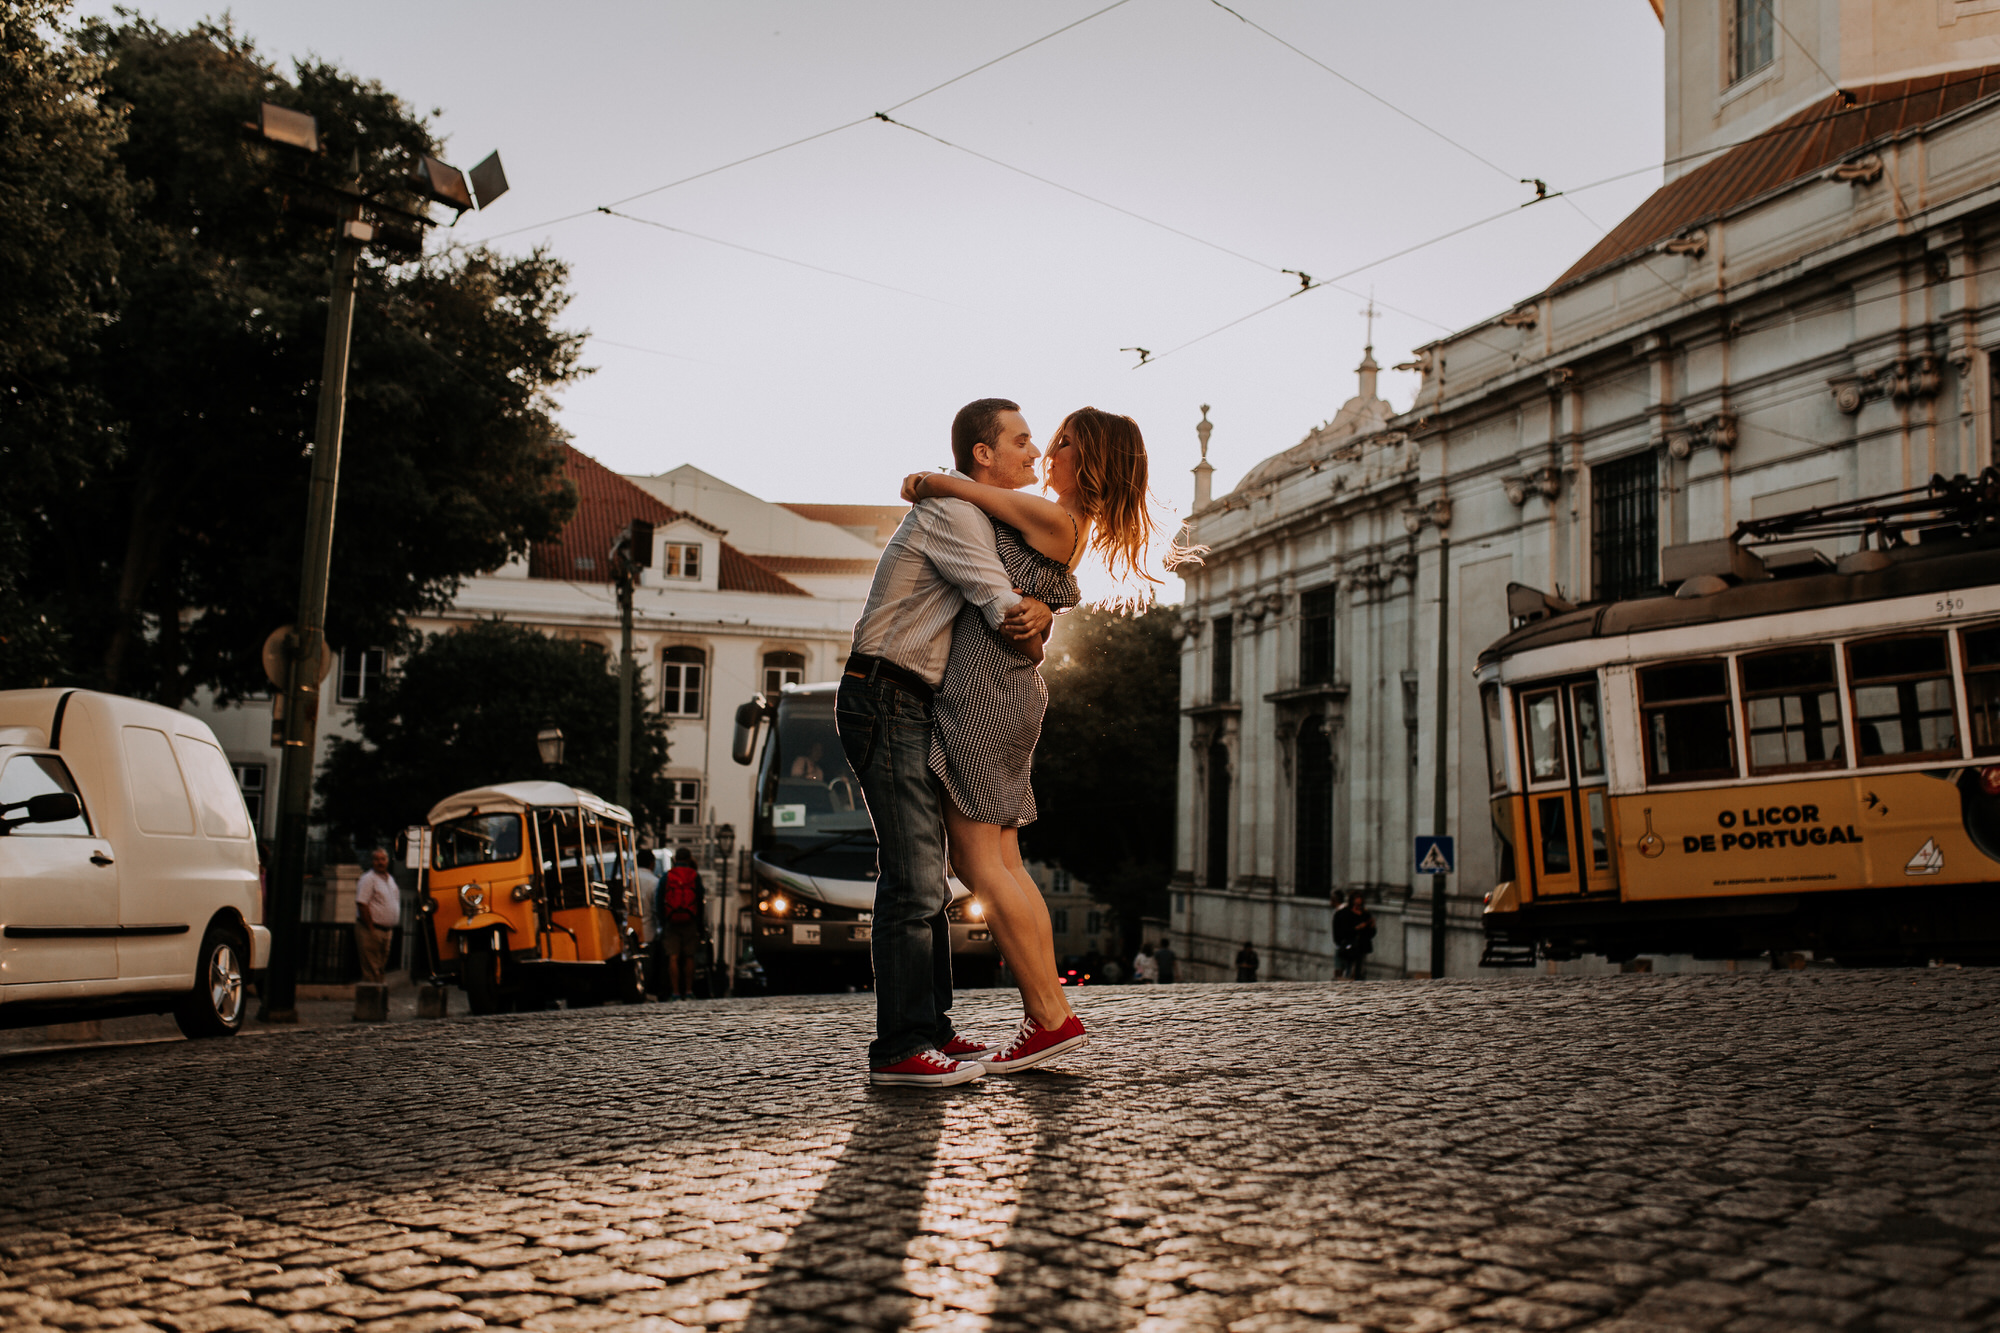 26 -sessao-noivado-engagement-session-alfama-lisboa-town-wedding-photography-photographer-natural-best-venue-planner-destination-filipe-santiago-fotografia-sunset-portuguese-bus-electric